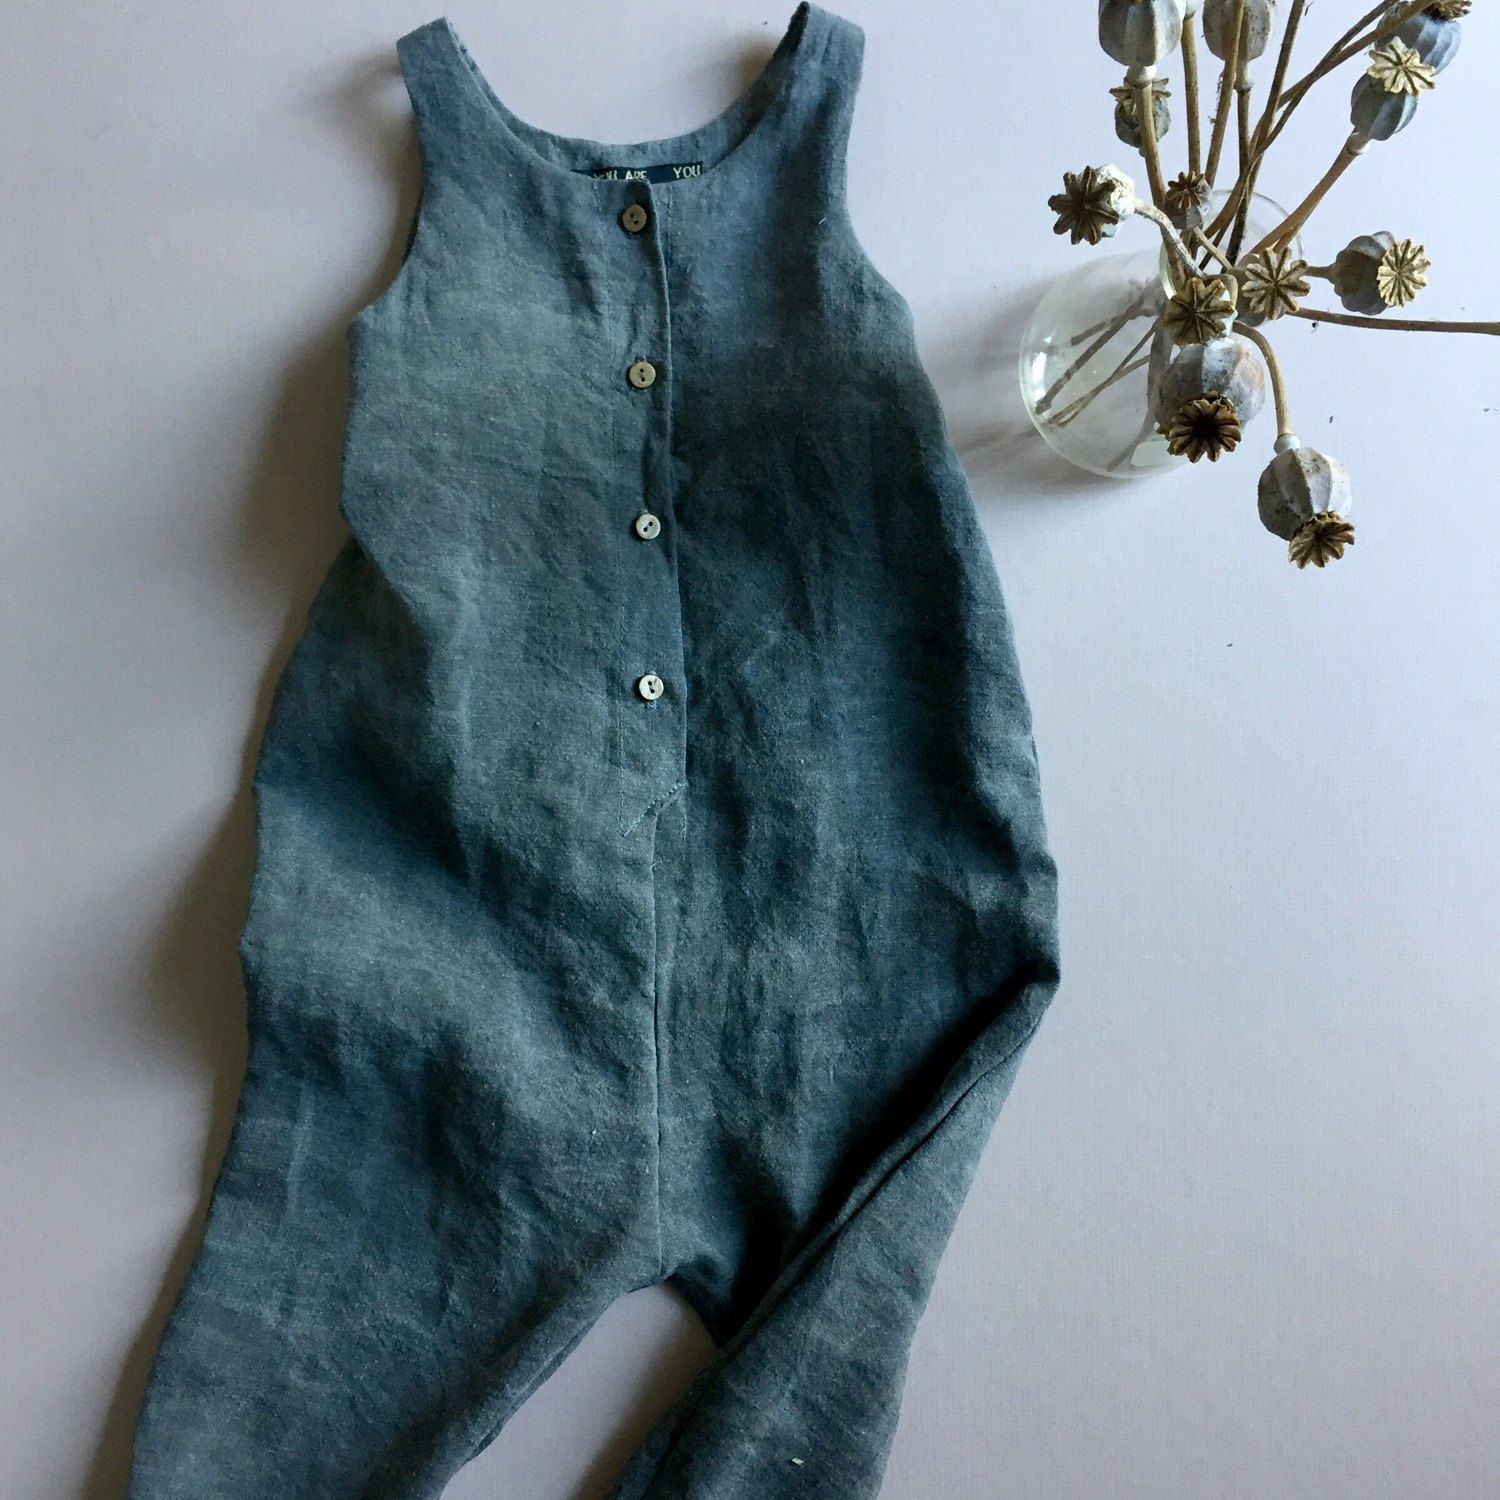 Updates from YouAreSmall on Etsy   fashionista   Pinterest   Etsy ...